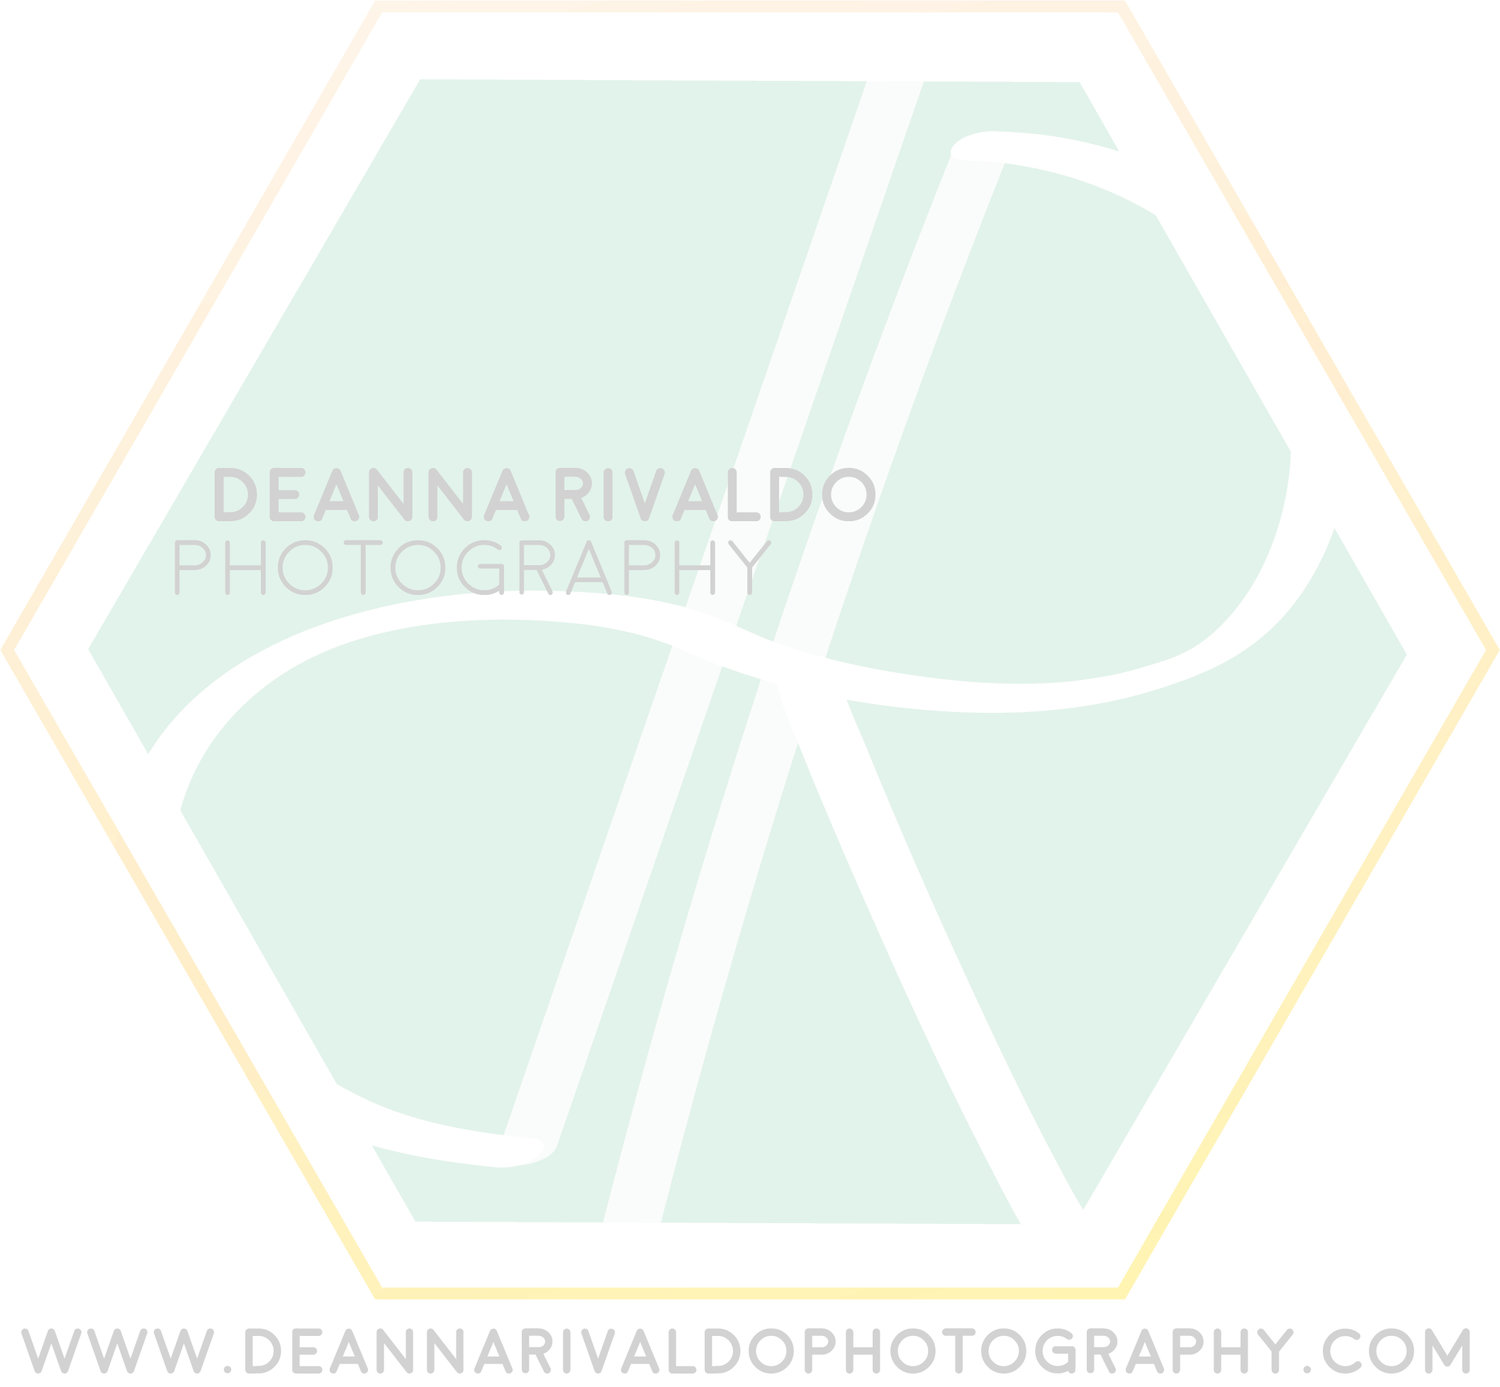 Deanna Rivaldo Photography